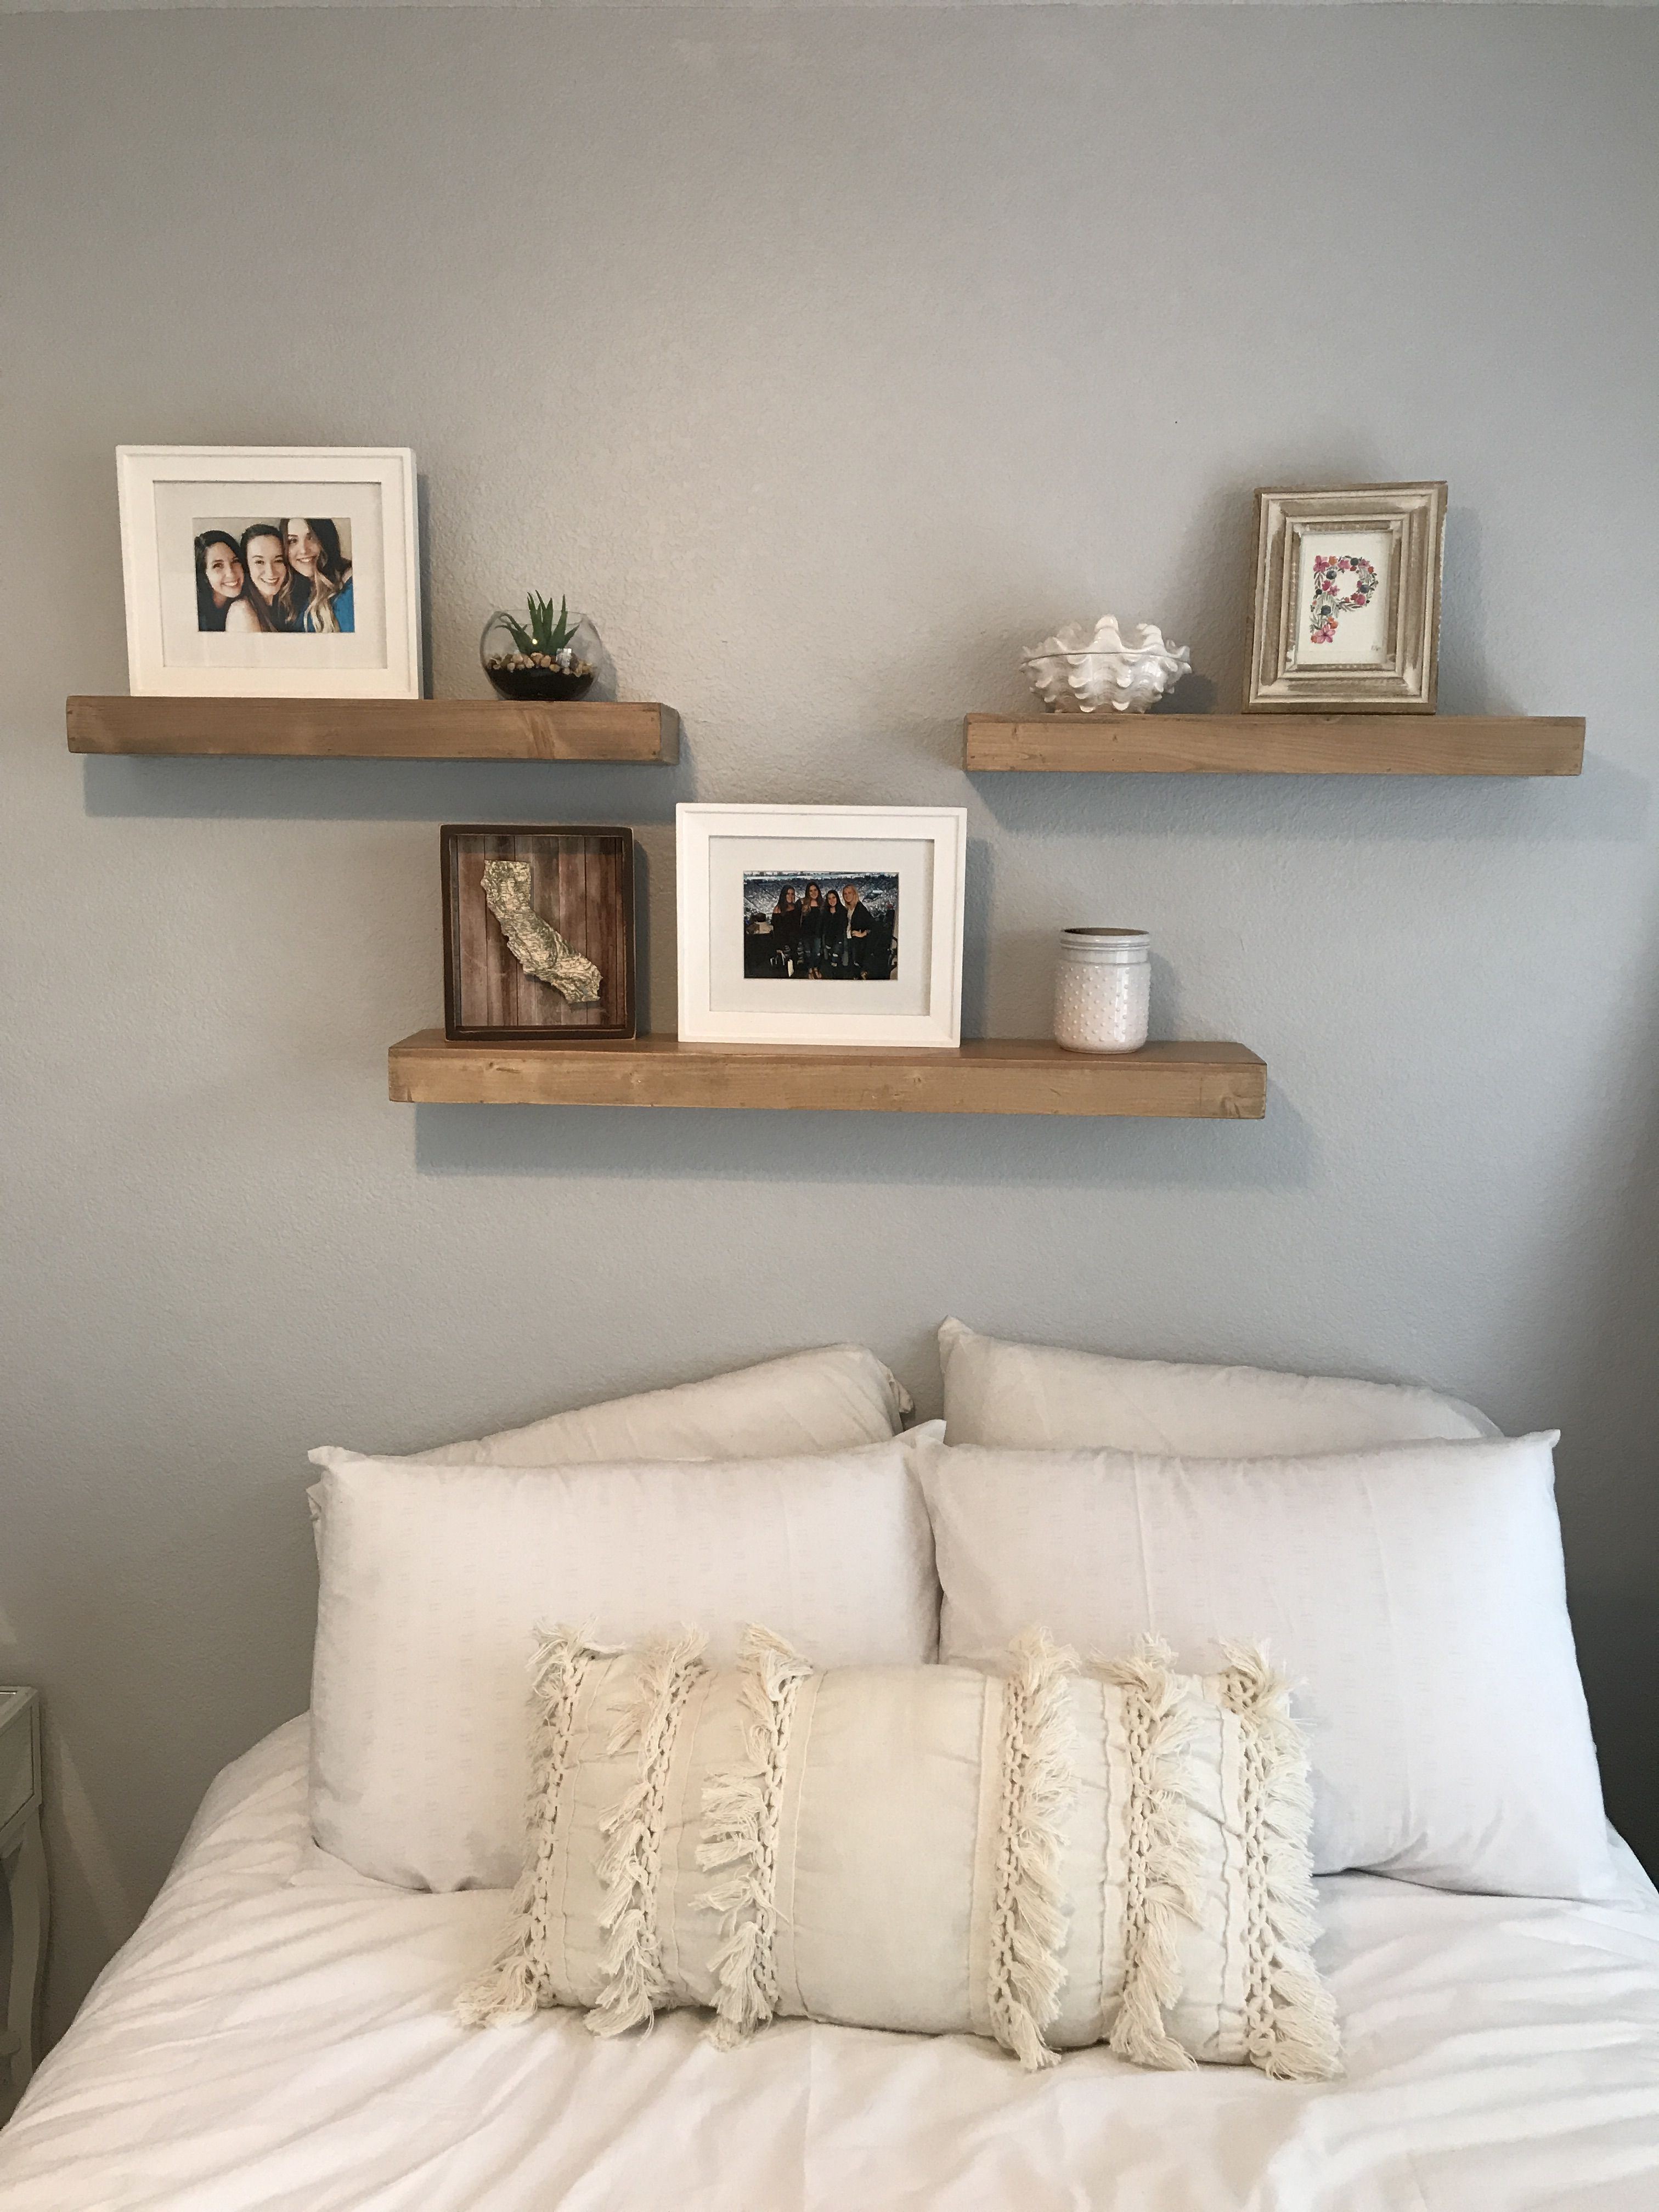 3 Shelves Above Bed White And Grey Bedroom Fun Room Makeover